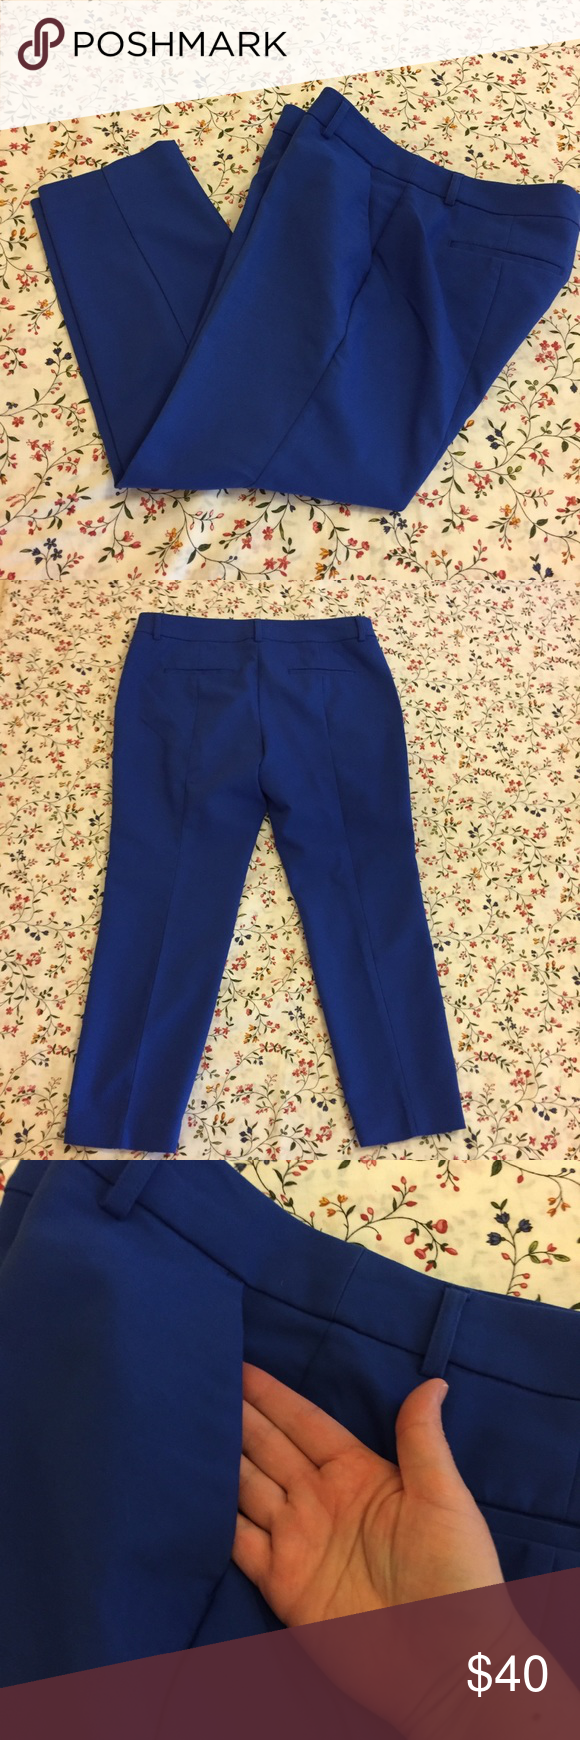 """Express Royal Blue Petite Pant Petite Mid Rise """"Columnist"""" Barely Boot Pant with 4 deep pockets (back pockets are still stitched closed). Inseam is 25in. Polyester/cotton/spandex blend. Previously loved with no visible flaws. #101 Express Pants Capris"""